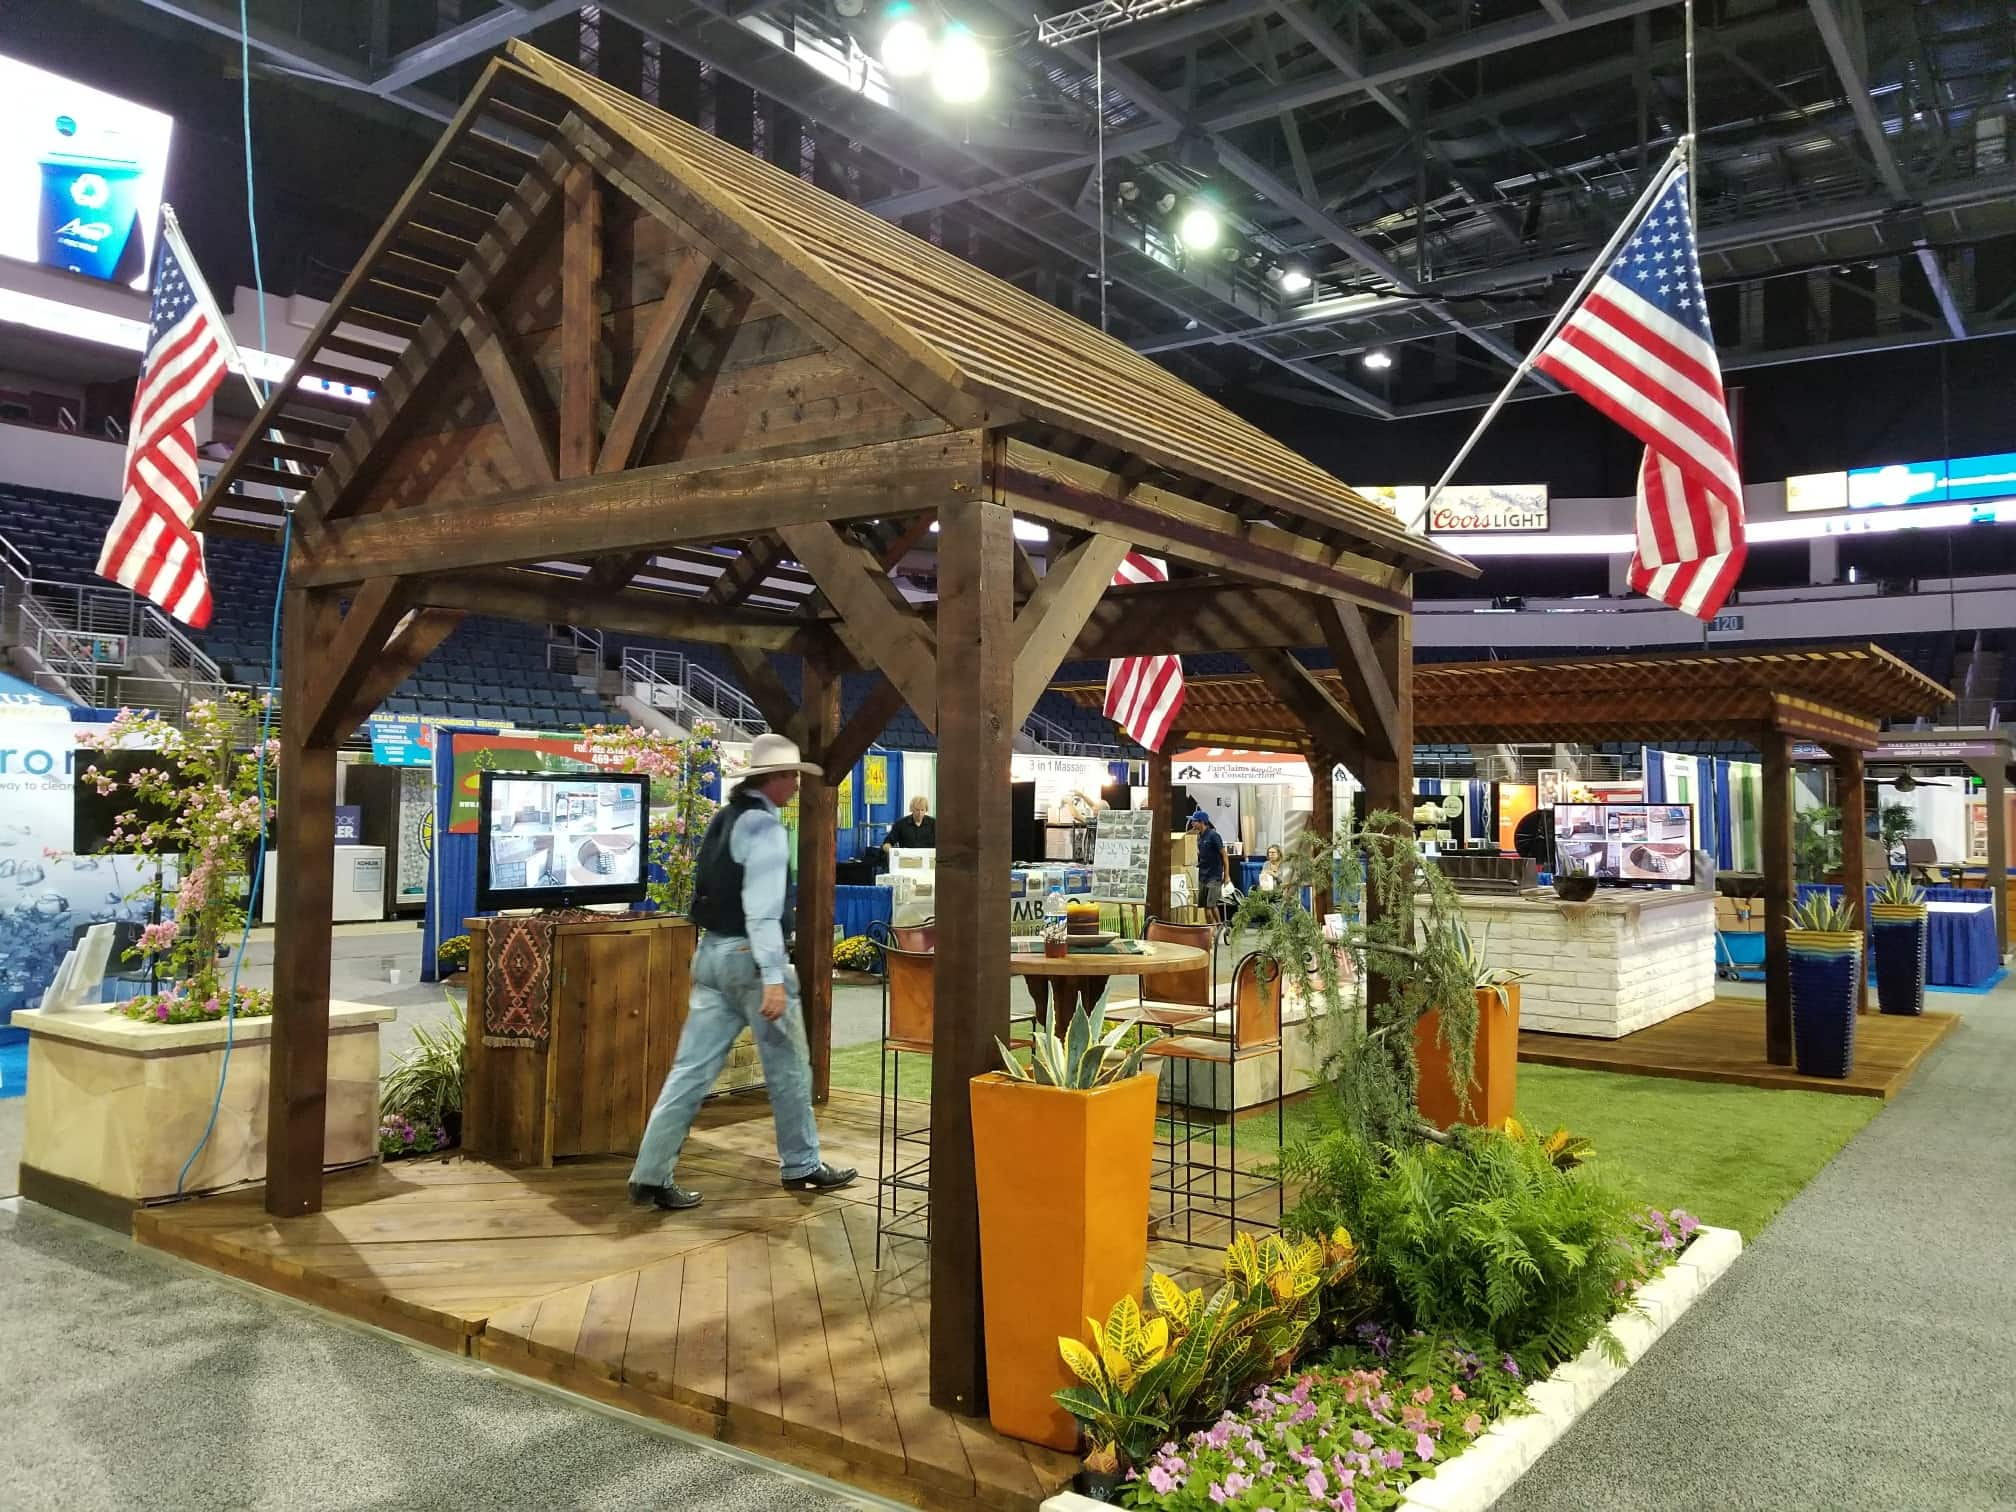 6th Annual Collin County Fall Home and Garden Show